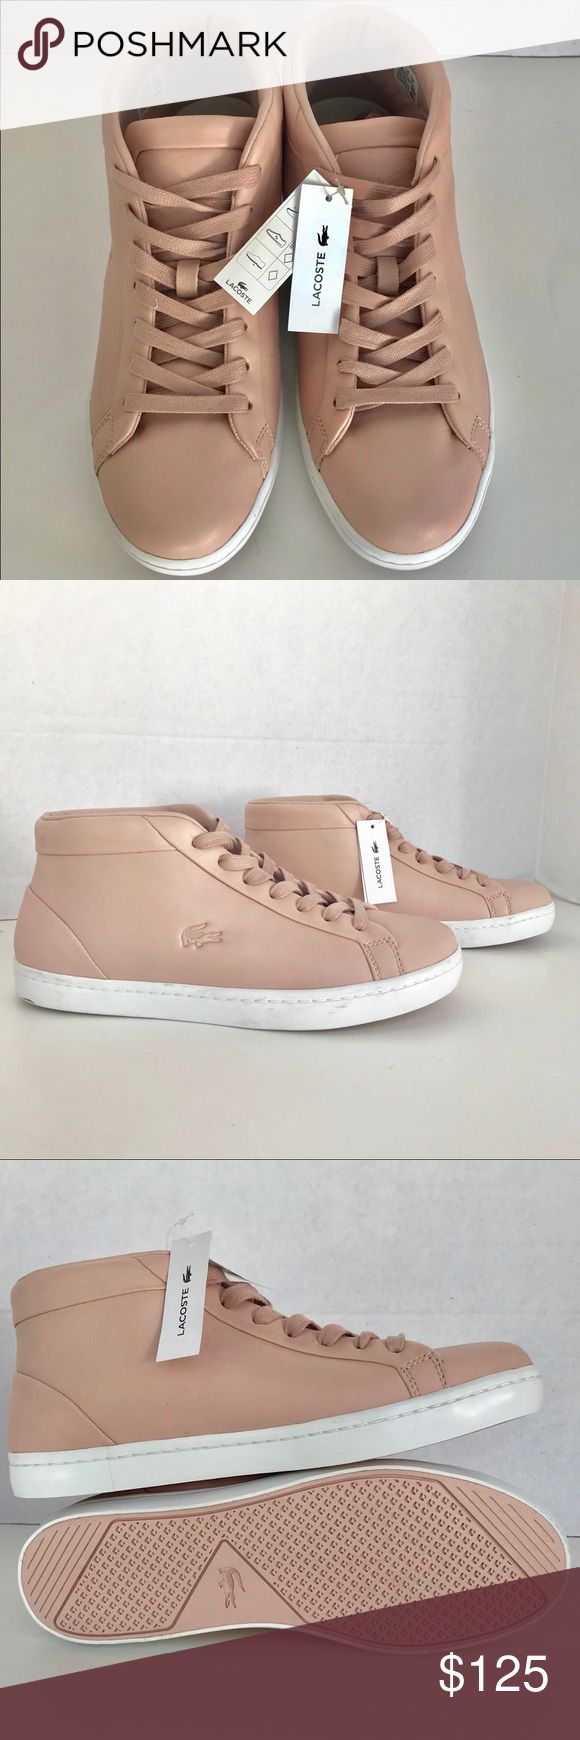 🆕Lacoste Straightset Chukka Leather Sneakers Sz10 Lace up Please see pictures for more details. If you have any questions, please feel free to ask me. Thank you for looking Please check my other items for sale Lacoste Shoes Sneakers